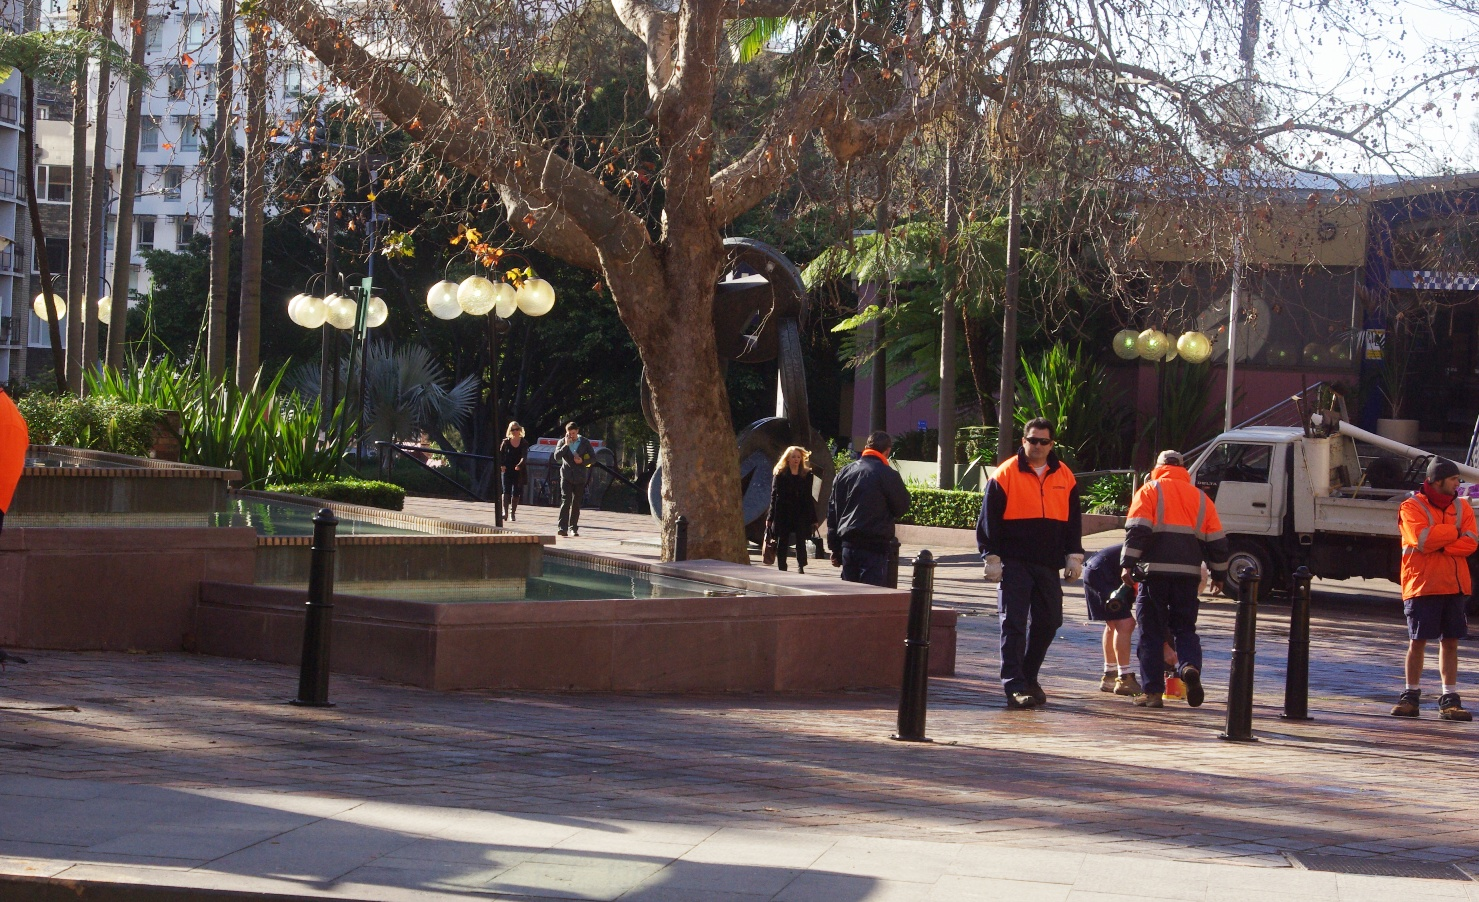 El Alamein Fountain bollards (image)